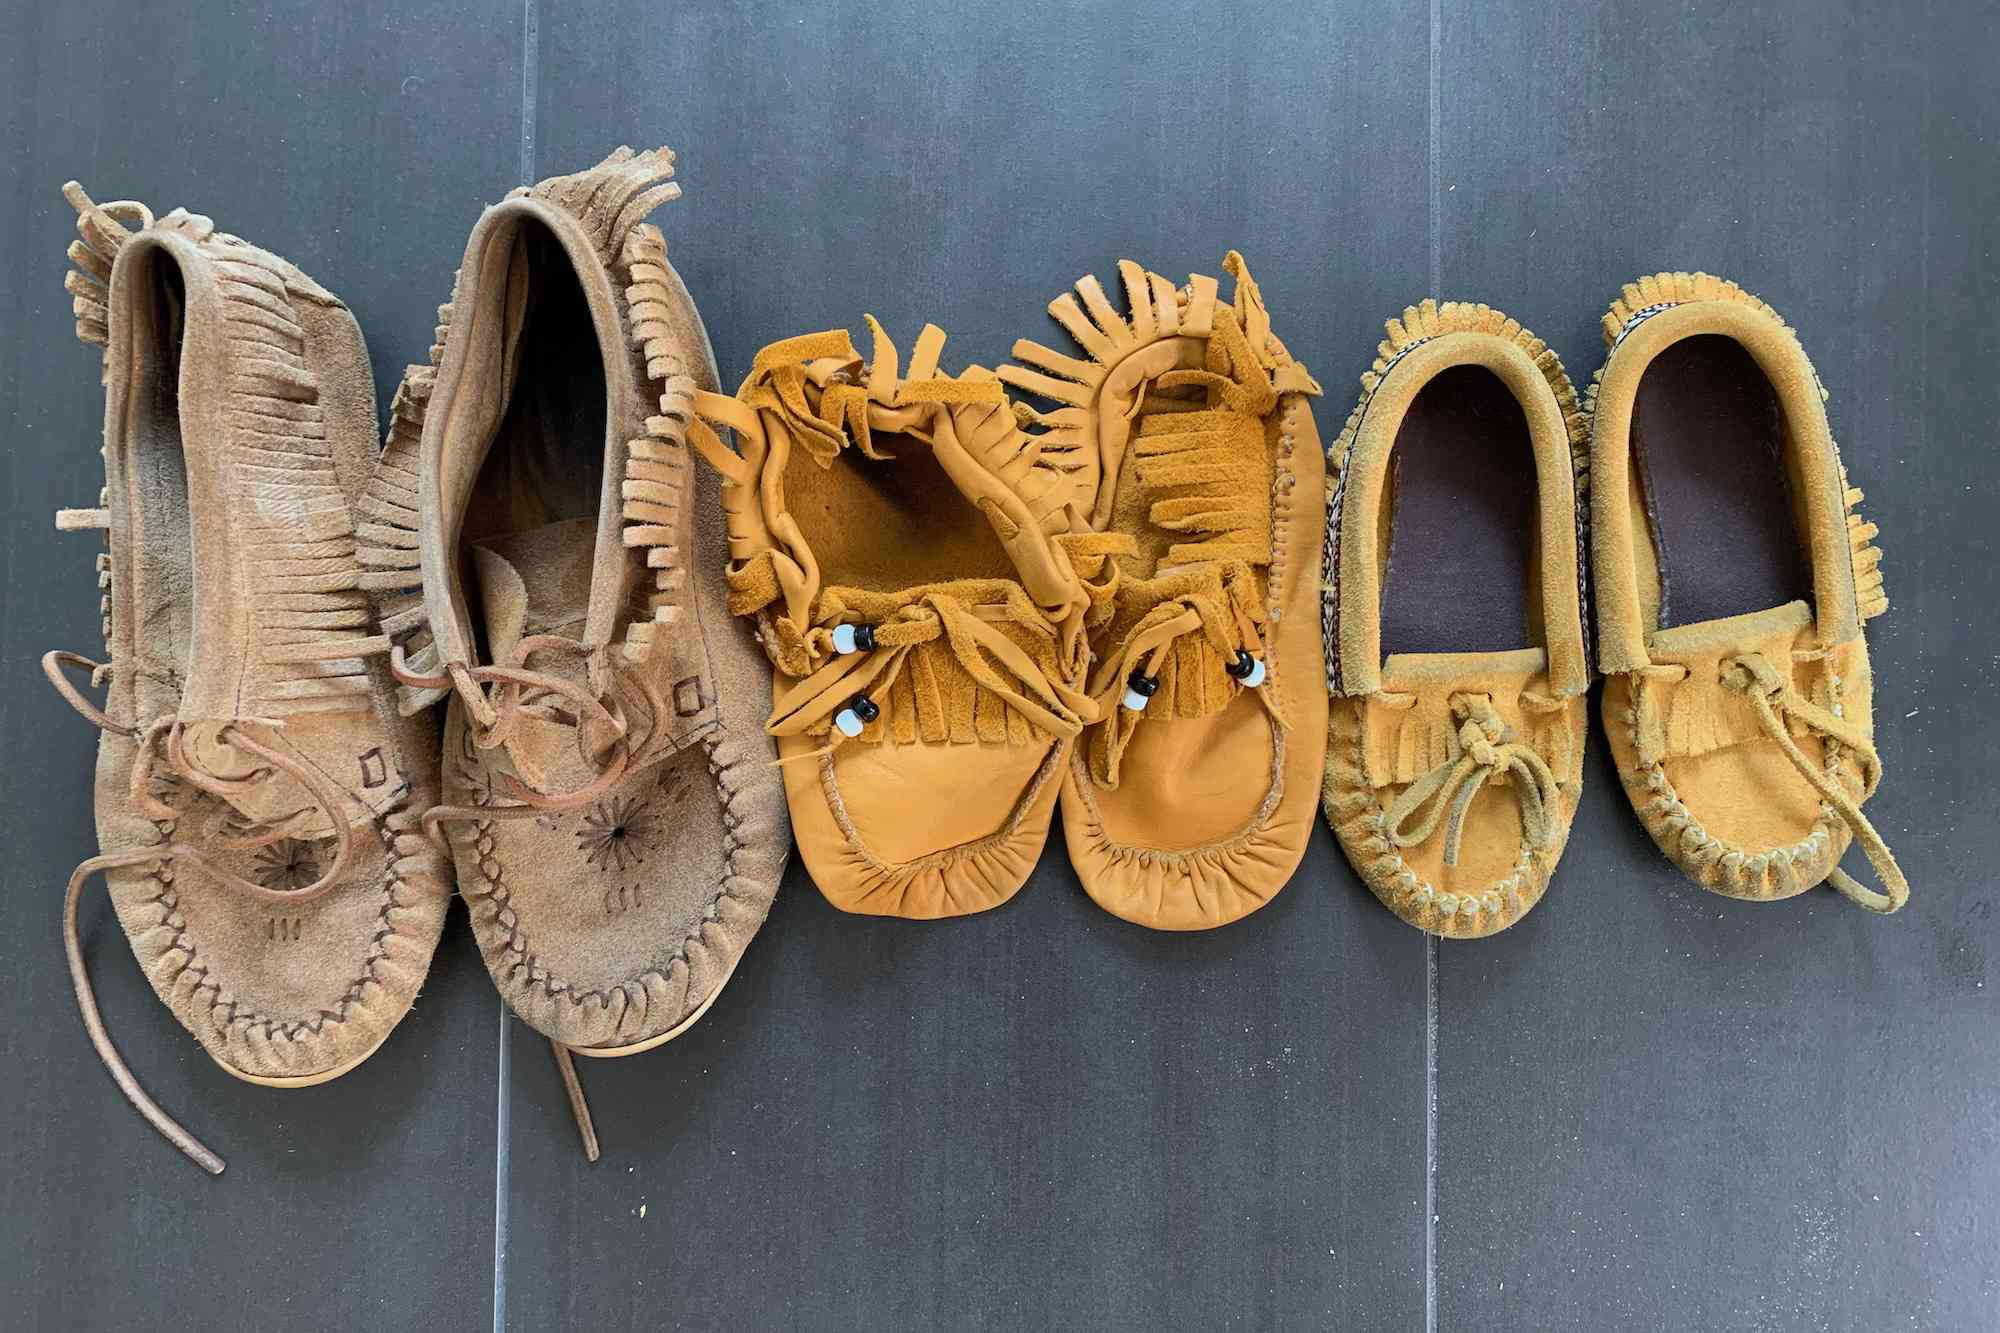 a collection of moccasins